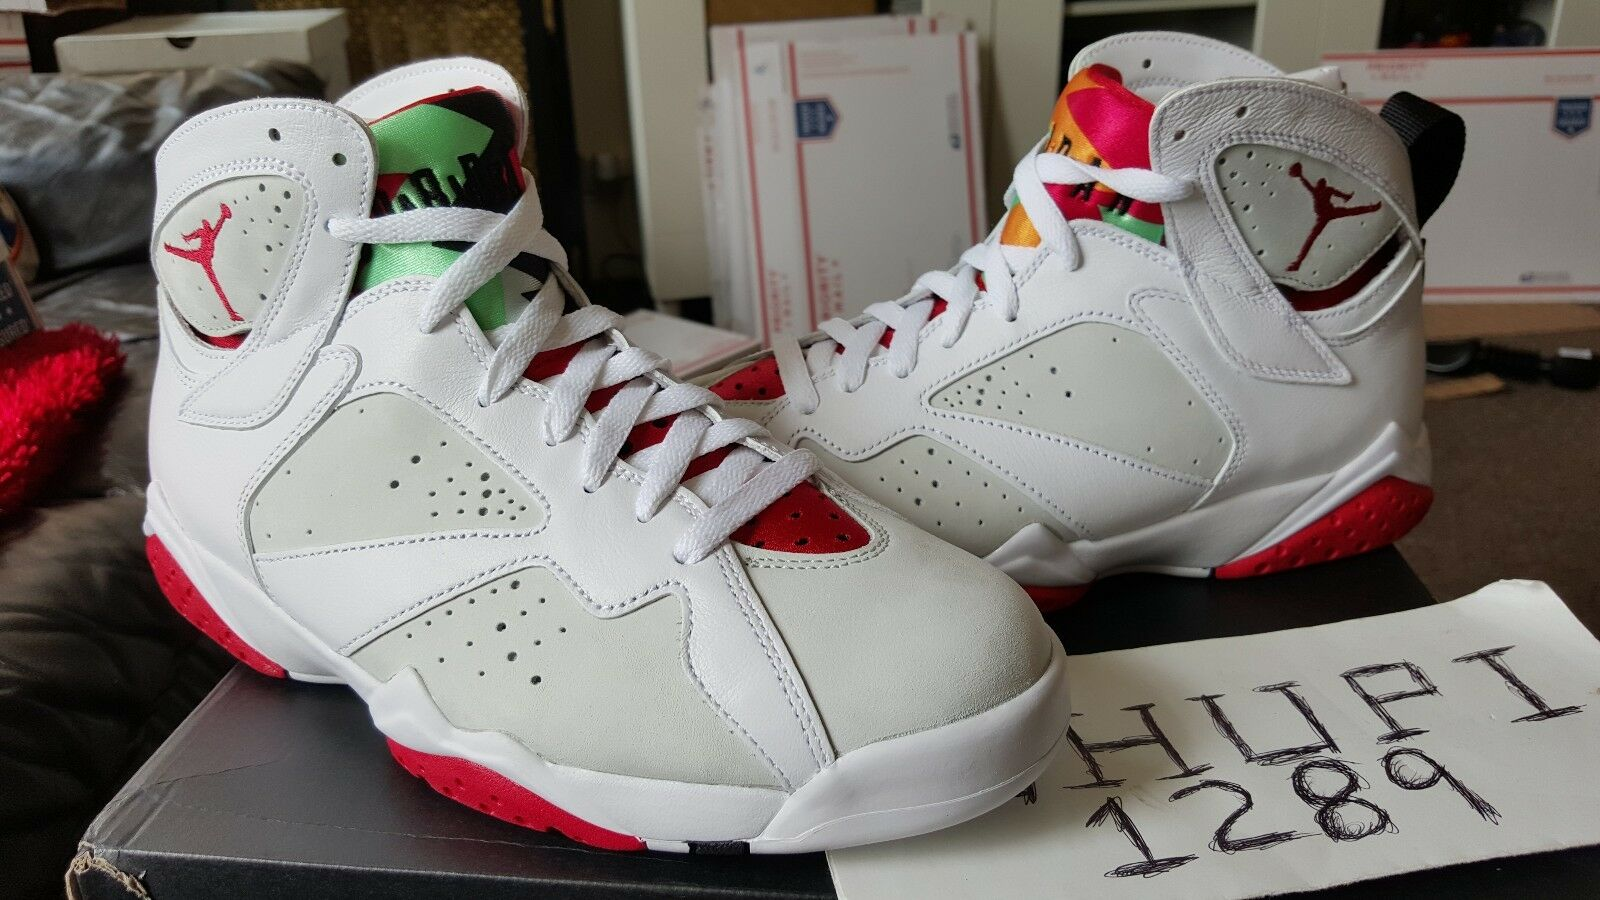 nike air jordan retro - vii wahre 7 hase wb weiße wahre vii red bugs - bunny - silber 304775-125 6a6729